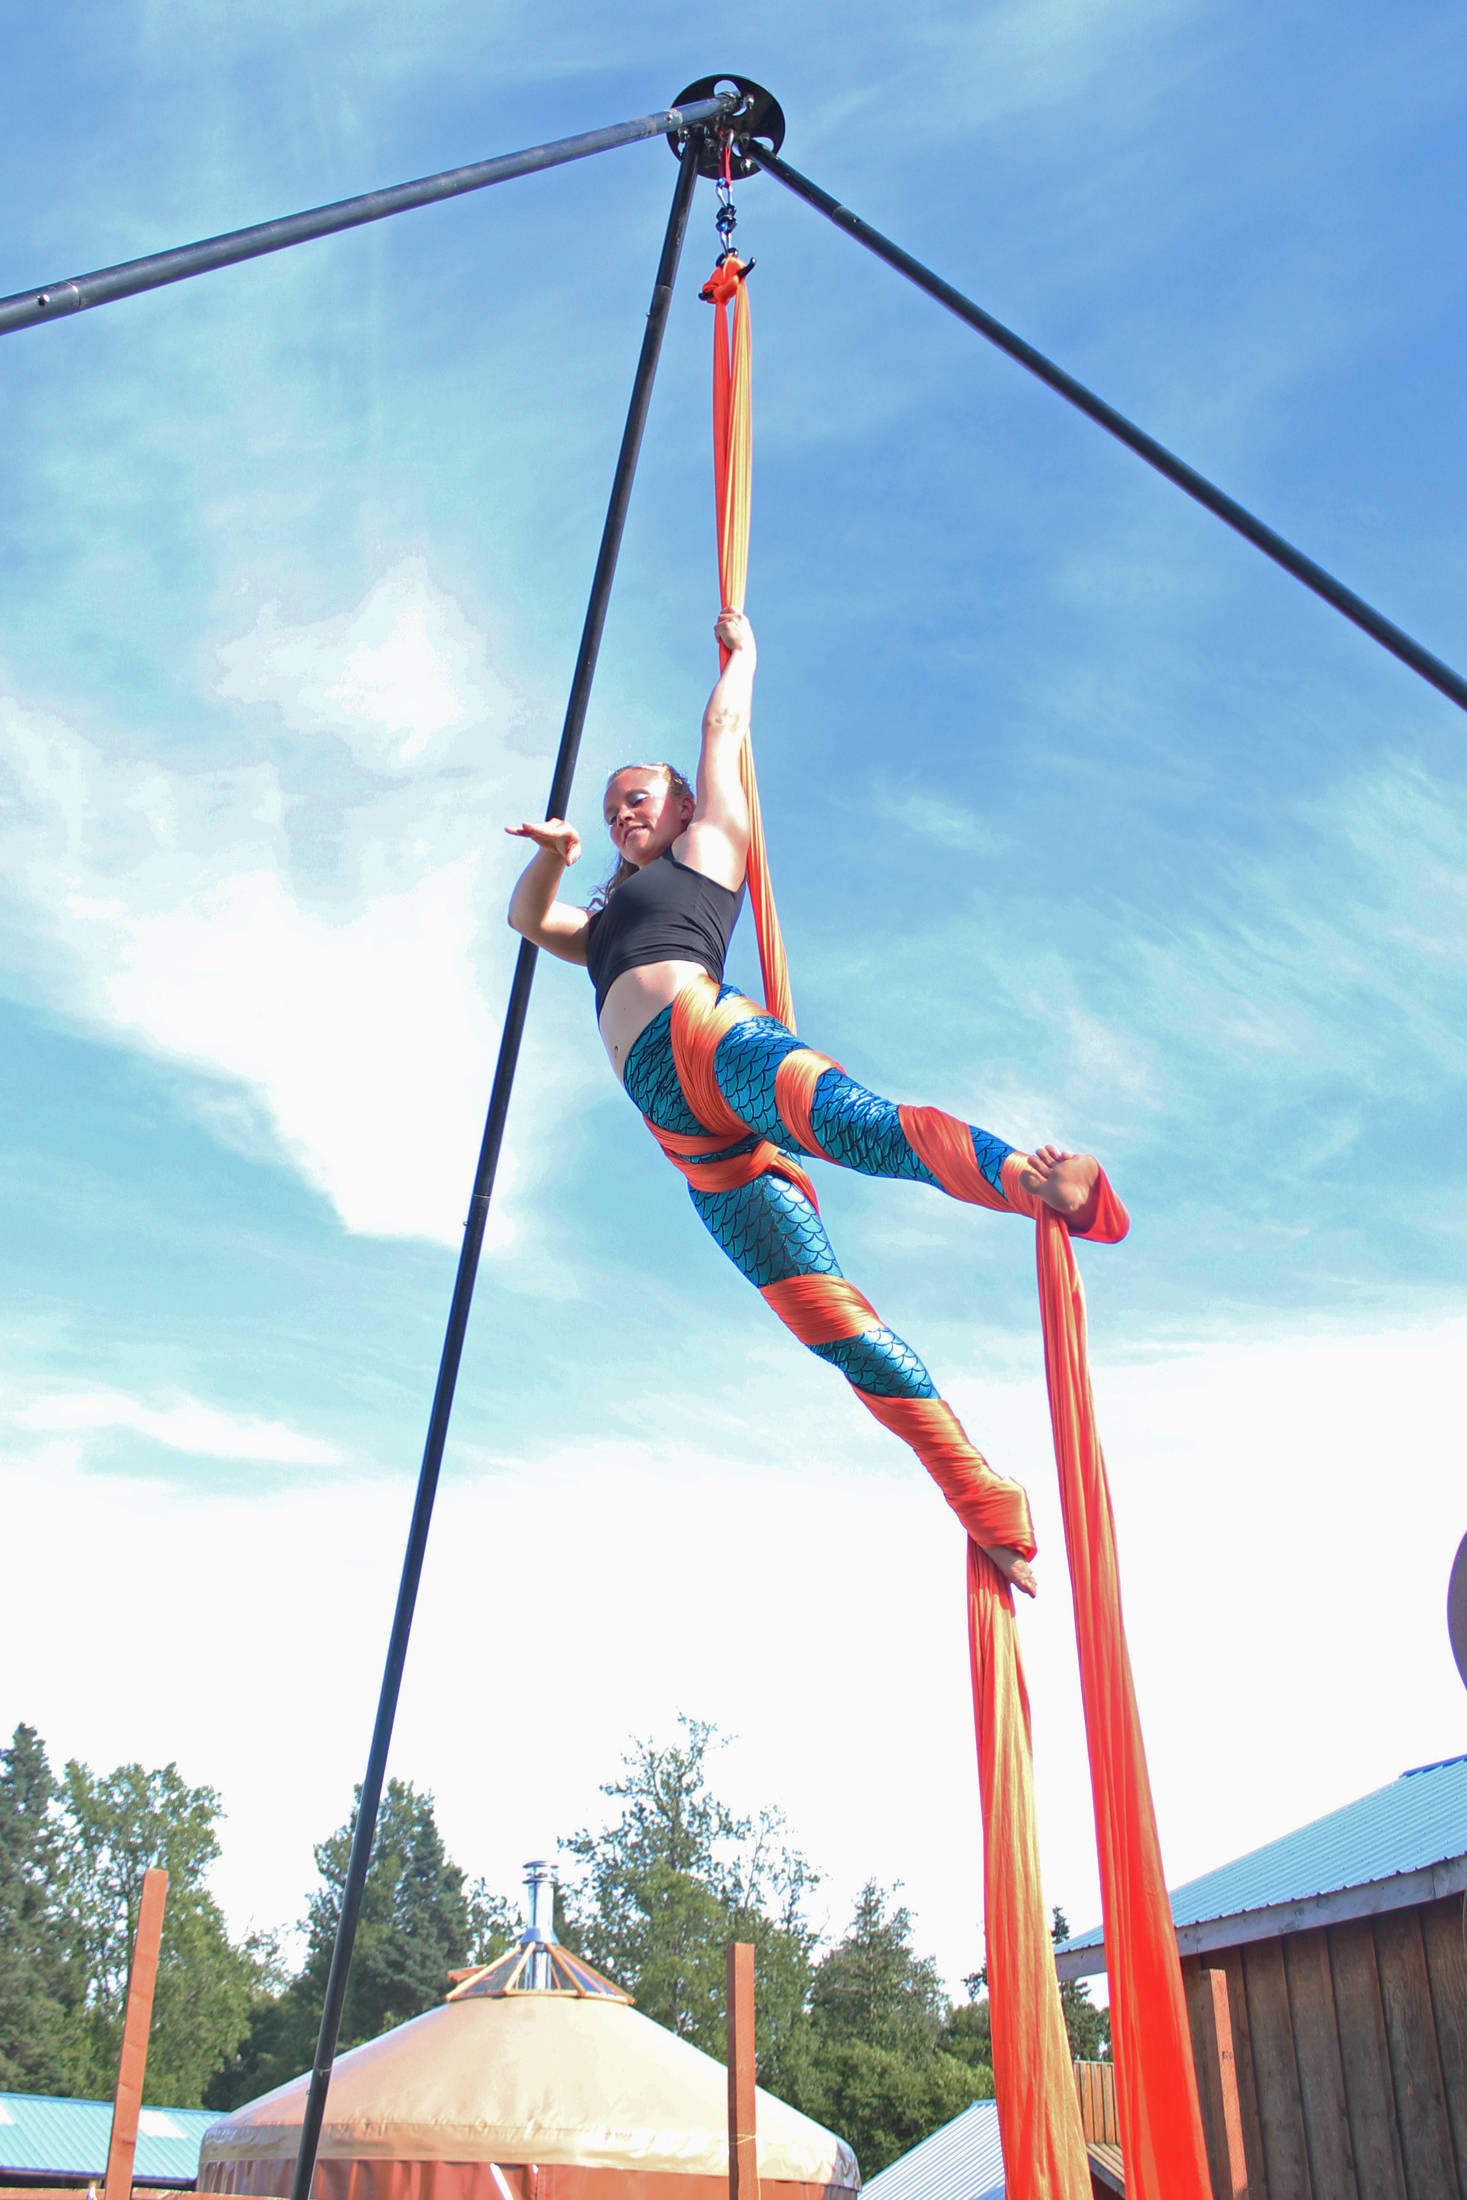 An aerial performer spins in the air next to the Ocean State at this year's Salmonfest on Saturday, Aug. 4, 2018 at the Kenai Peninsula Fairgrounds in Ninilchik, Alaska. (Photo by Megan Pacer/Homer News)